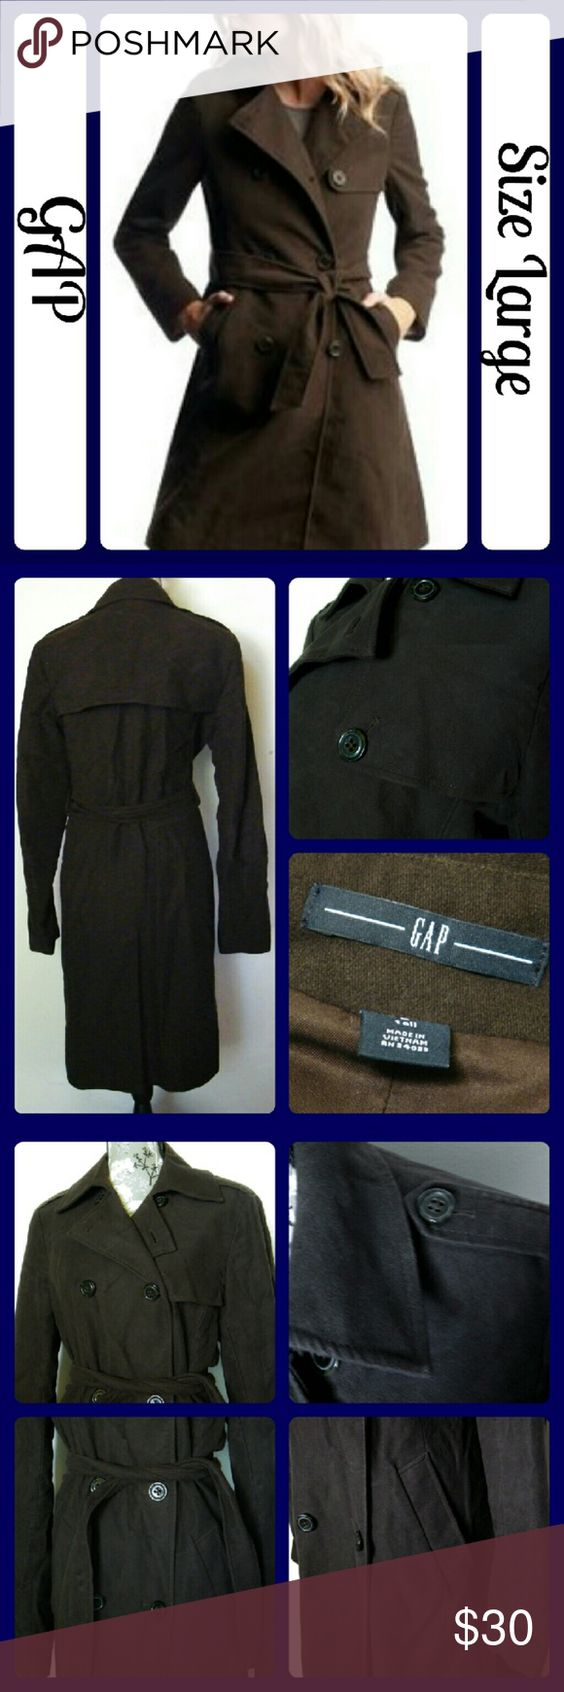 """GAP Long Moleskin Trench Jacket - Brown Chocolate brown. Long moleskin trench jacket. It is very warm and not thin like regular trenches. Worn once. Straight silhouette with a tailored fit. Hits at mid thigh. Fabric content: Shell- 100% Cotton and  Lining 100% Polyester. Measurements: Bust (underarm to underarm)  22"""", Length 41"""" From /a smoke-free Home GAP Jackets & Coats Trench Coats"""